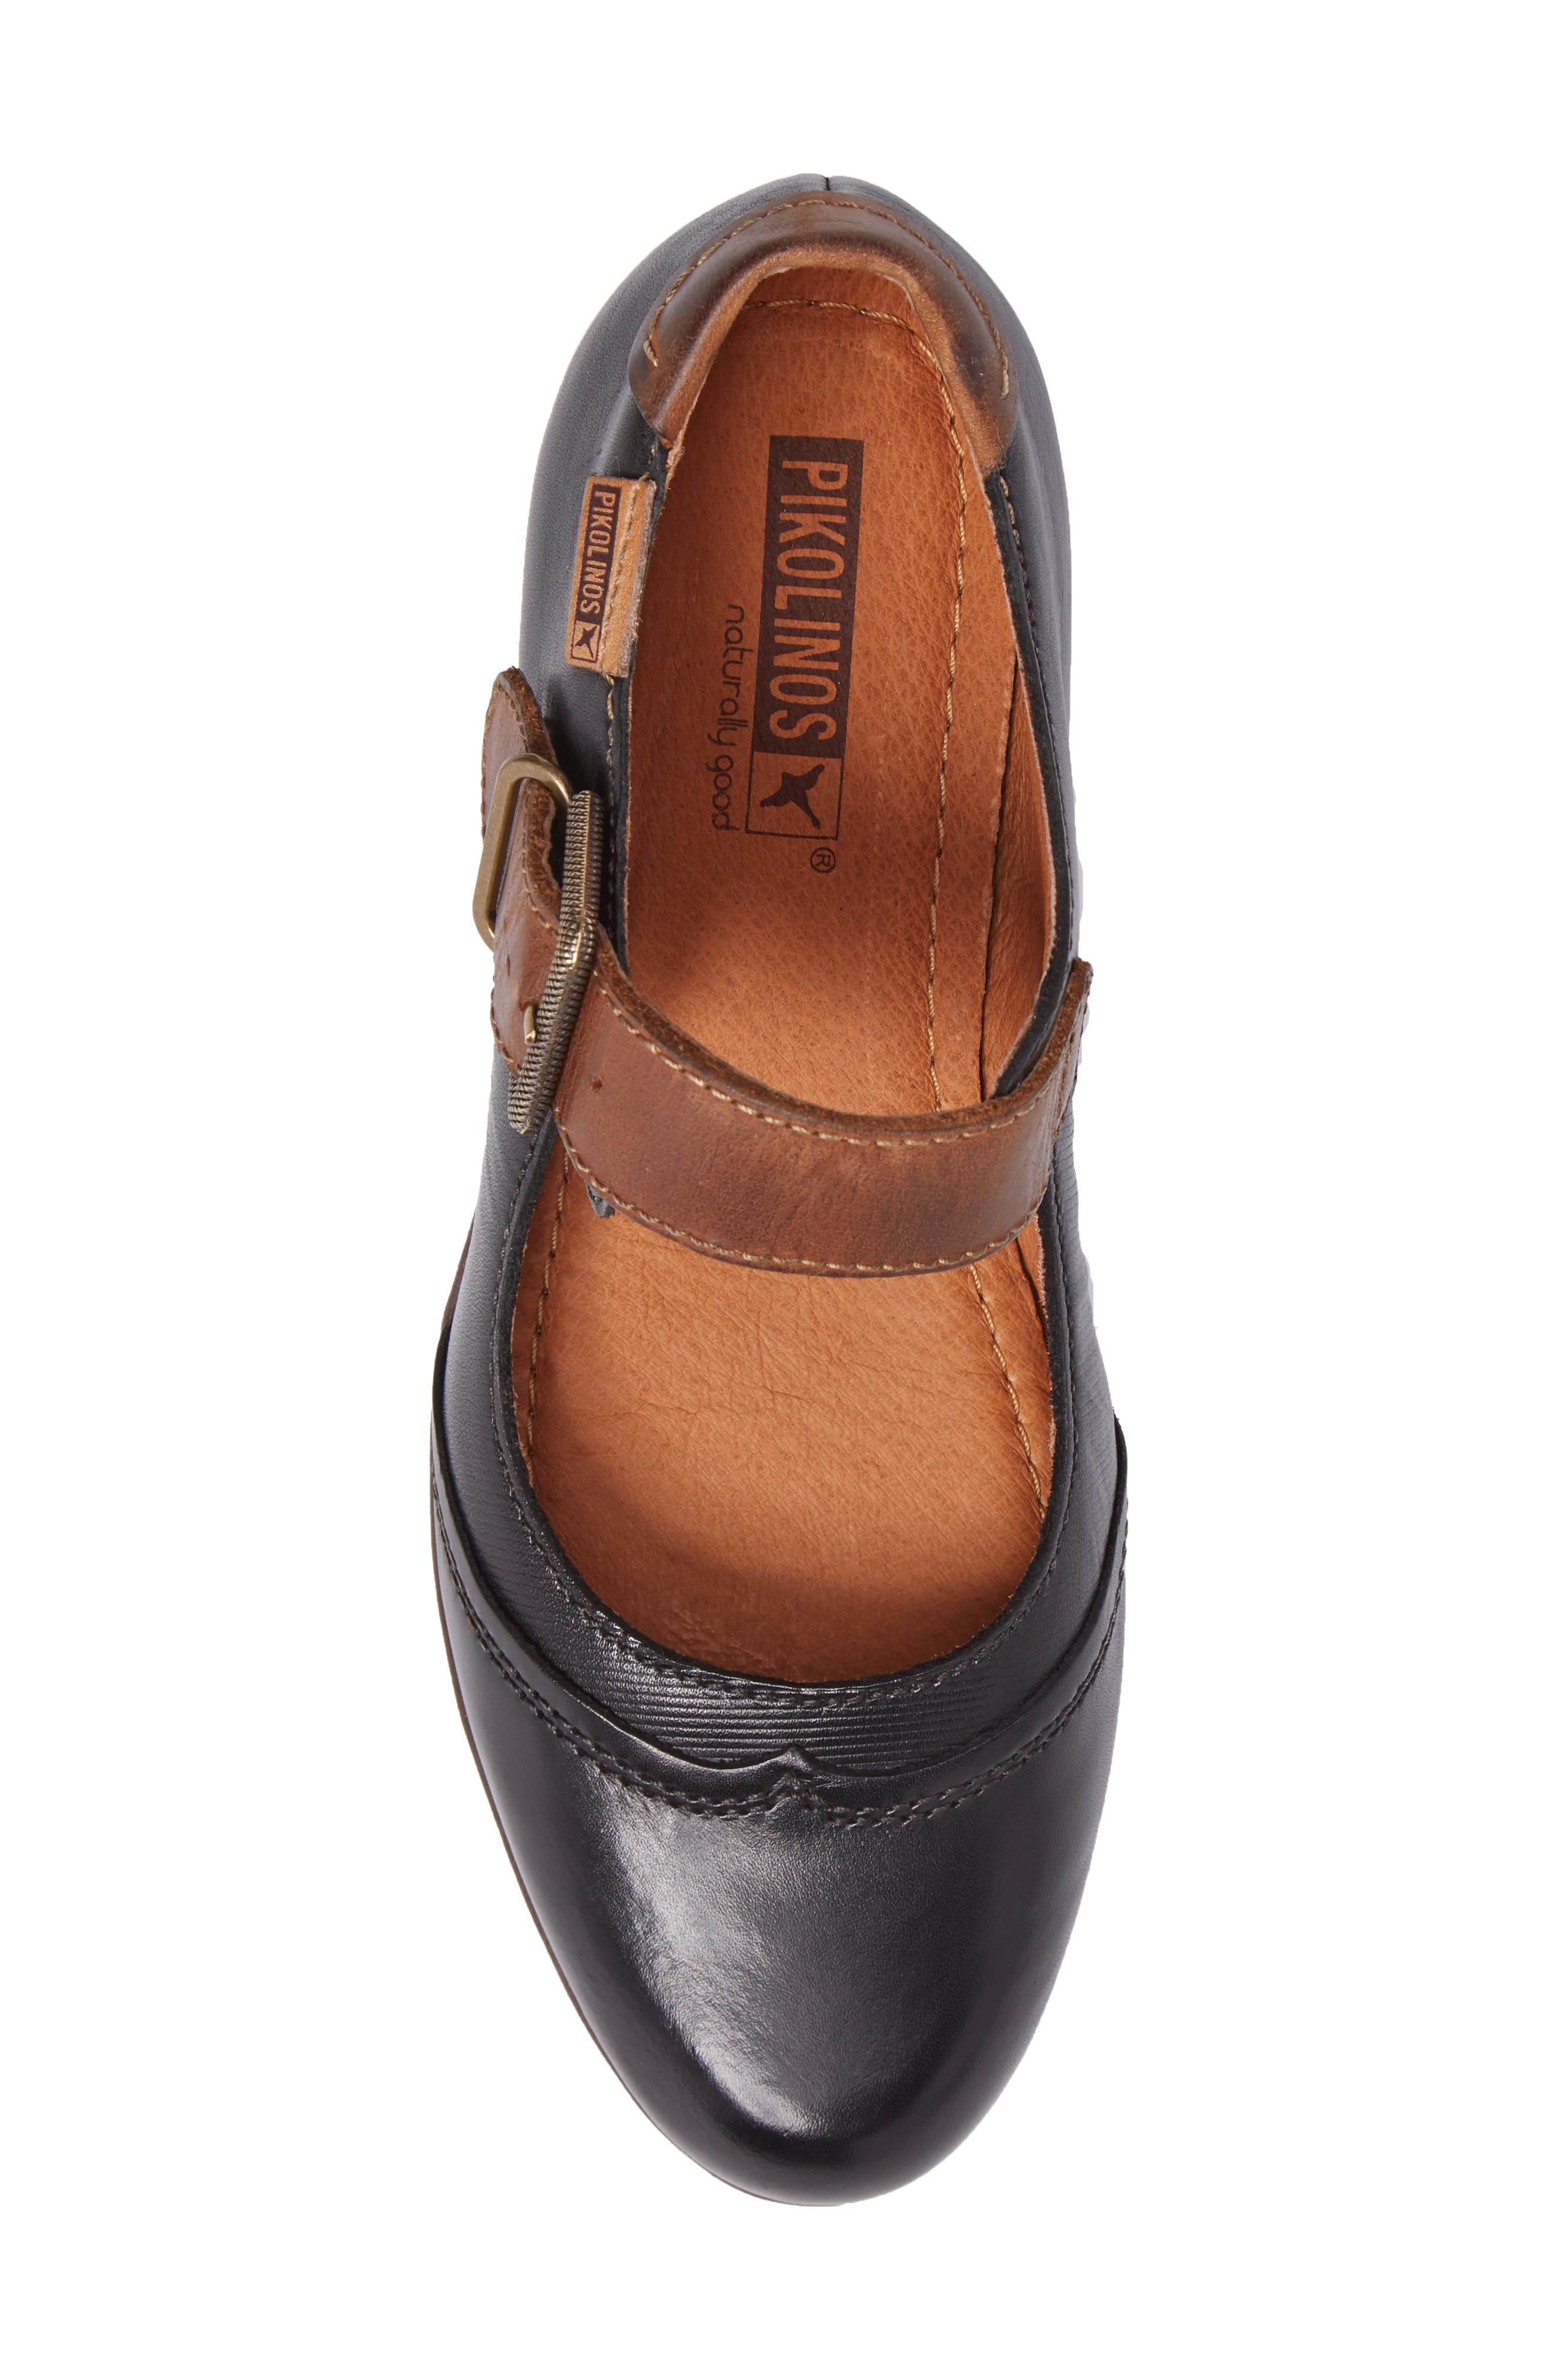 Rotterdam Water Resistant Mary Jane Pump,                             Alternate thumbnail 4, color,                             Black Leather